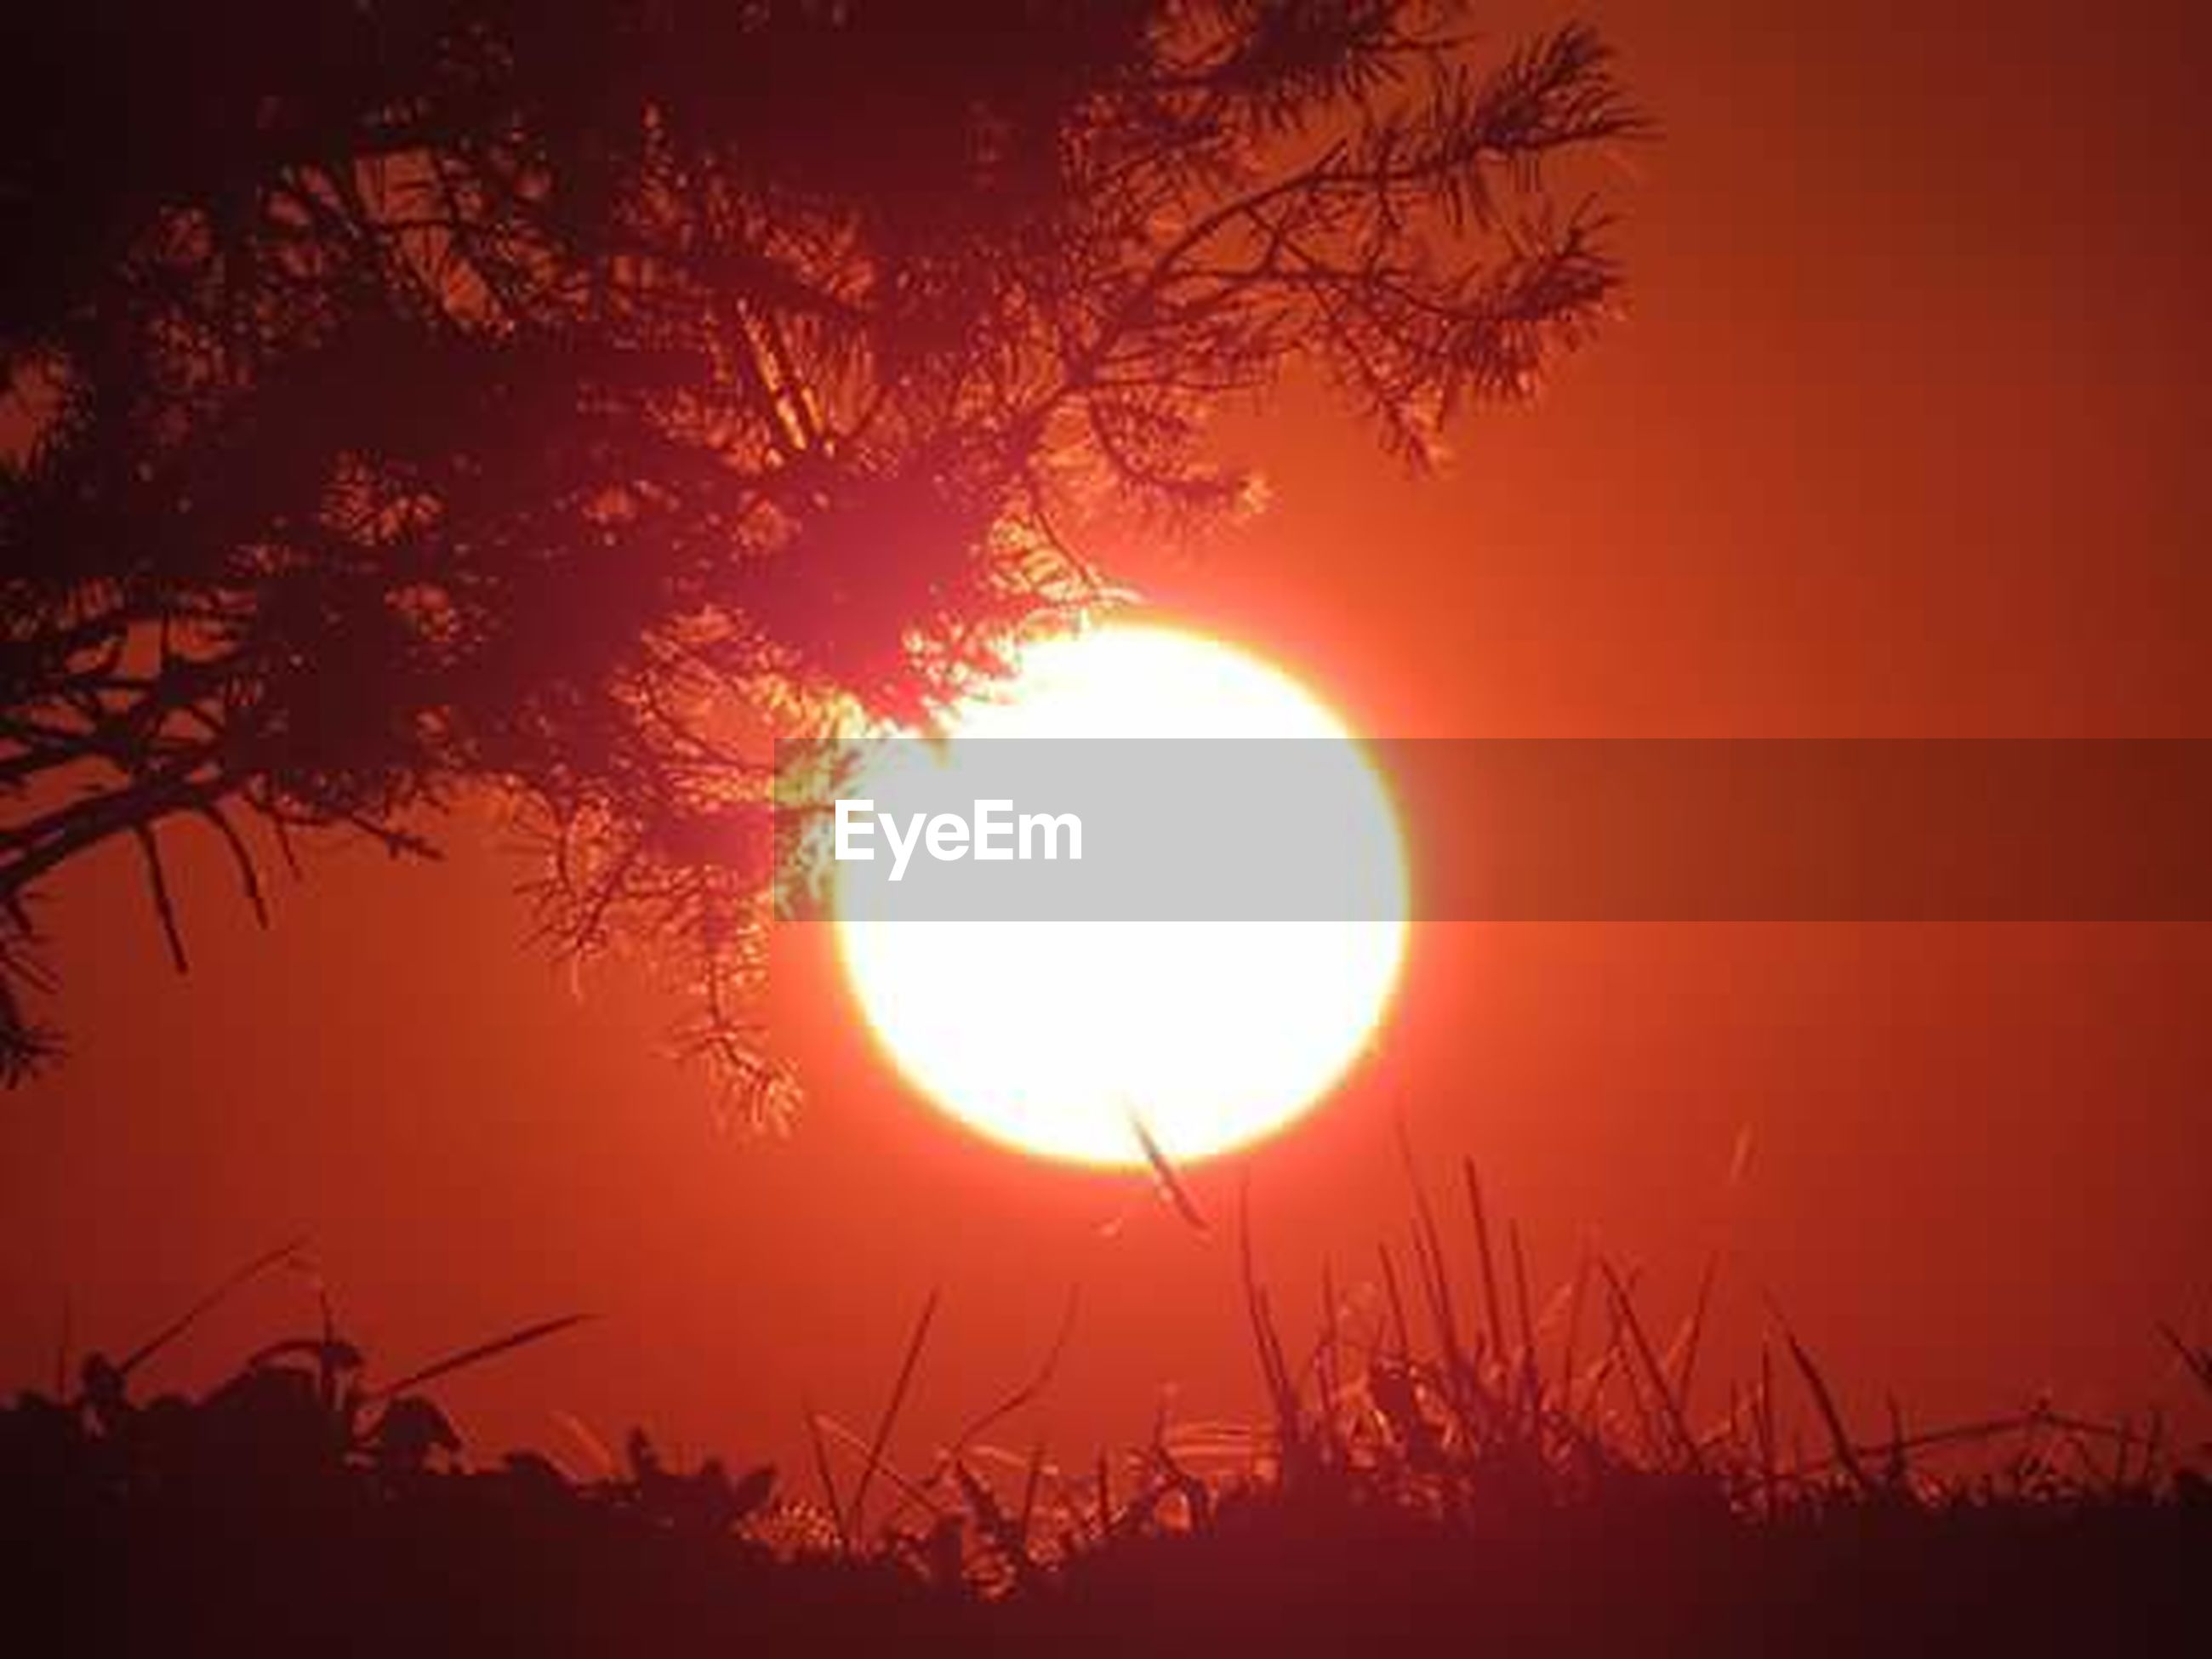 sun, sunset, circle, sunlight, silhouette, sky, tranquil scene, beauty, summer, beauty in nature, field, scenics, dusk, outdoors, no people, tree, nature, moon, brightly lit, illuminated, low angle view, grass, day